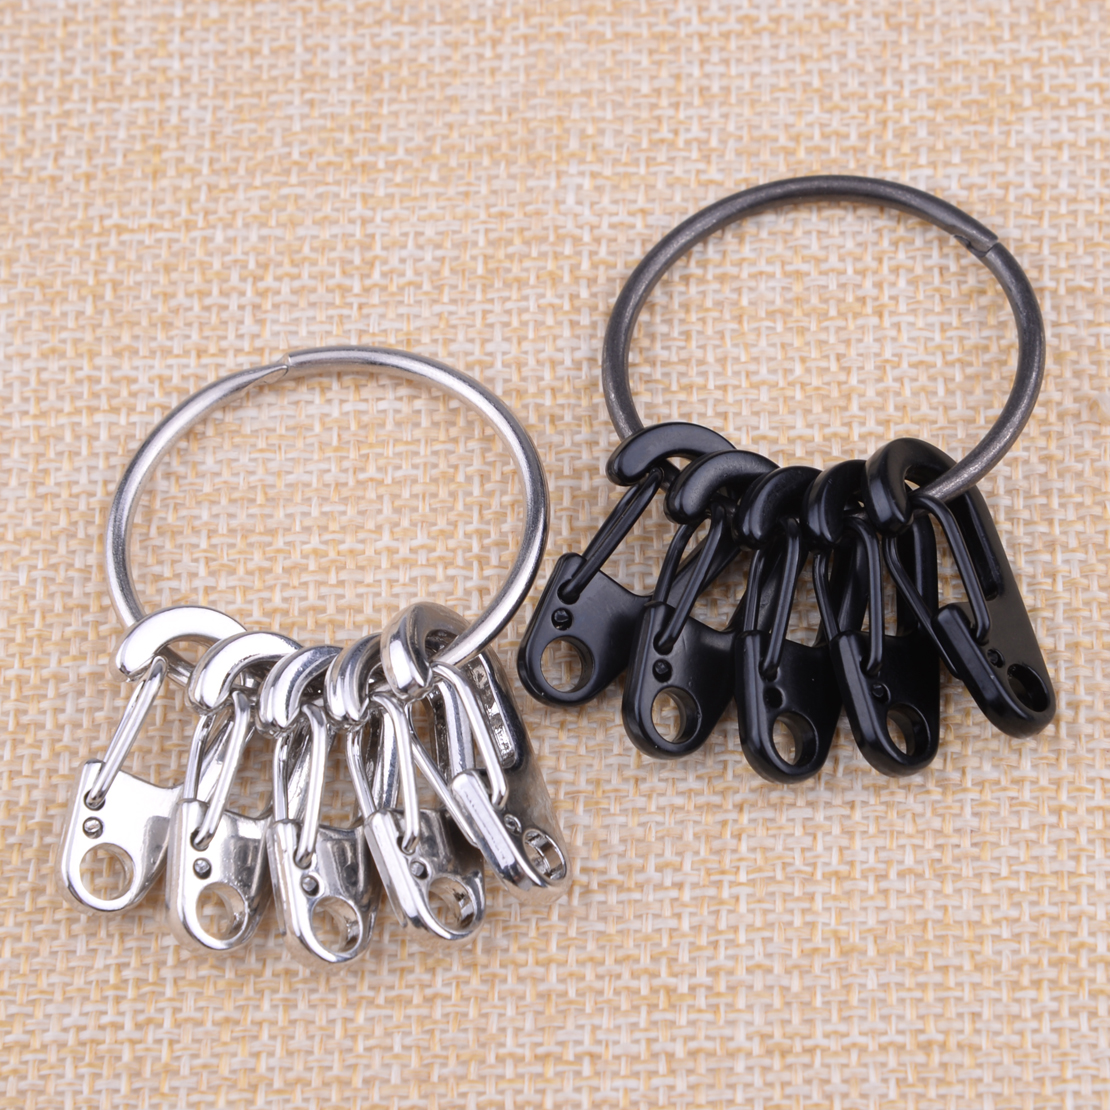 LETAOSK 5pcs Carabiner Mini D-Ring Clip Hook Buckle & 1 Ring Key Chain Outdoor Camping Stainless Steel Black/Silver